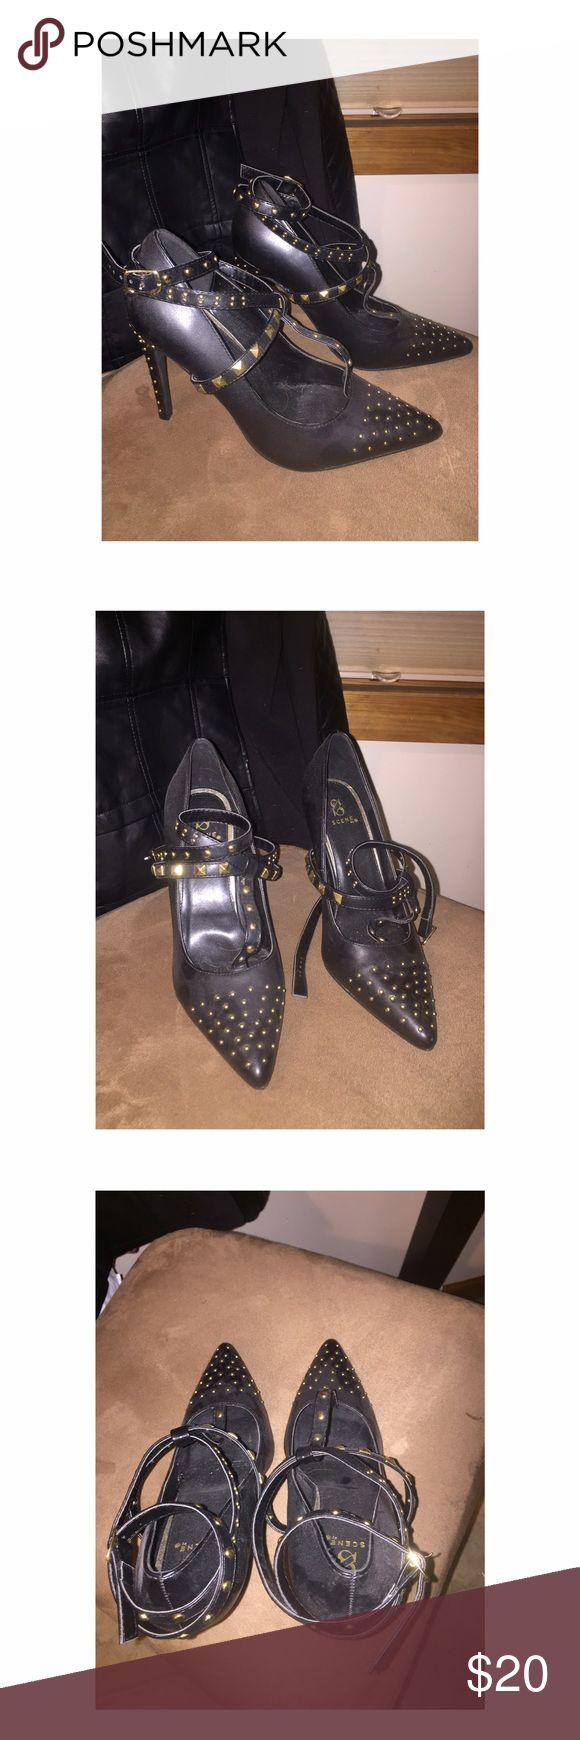 Shoe dazzle black studded pumps size 9 Shoe dazzle brand! Black studded pumps. Worn once for a bachelorette party. Can take pictures with them on if needed Shoe Dazzle Shoes Heels